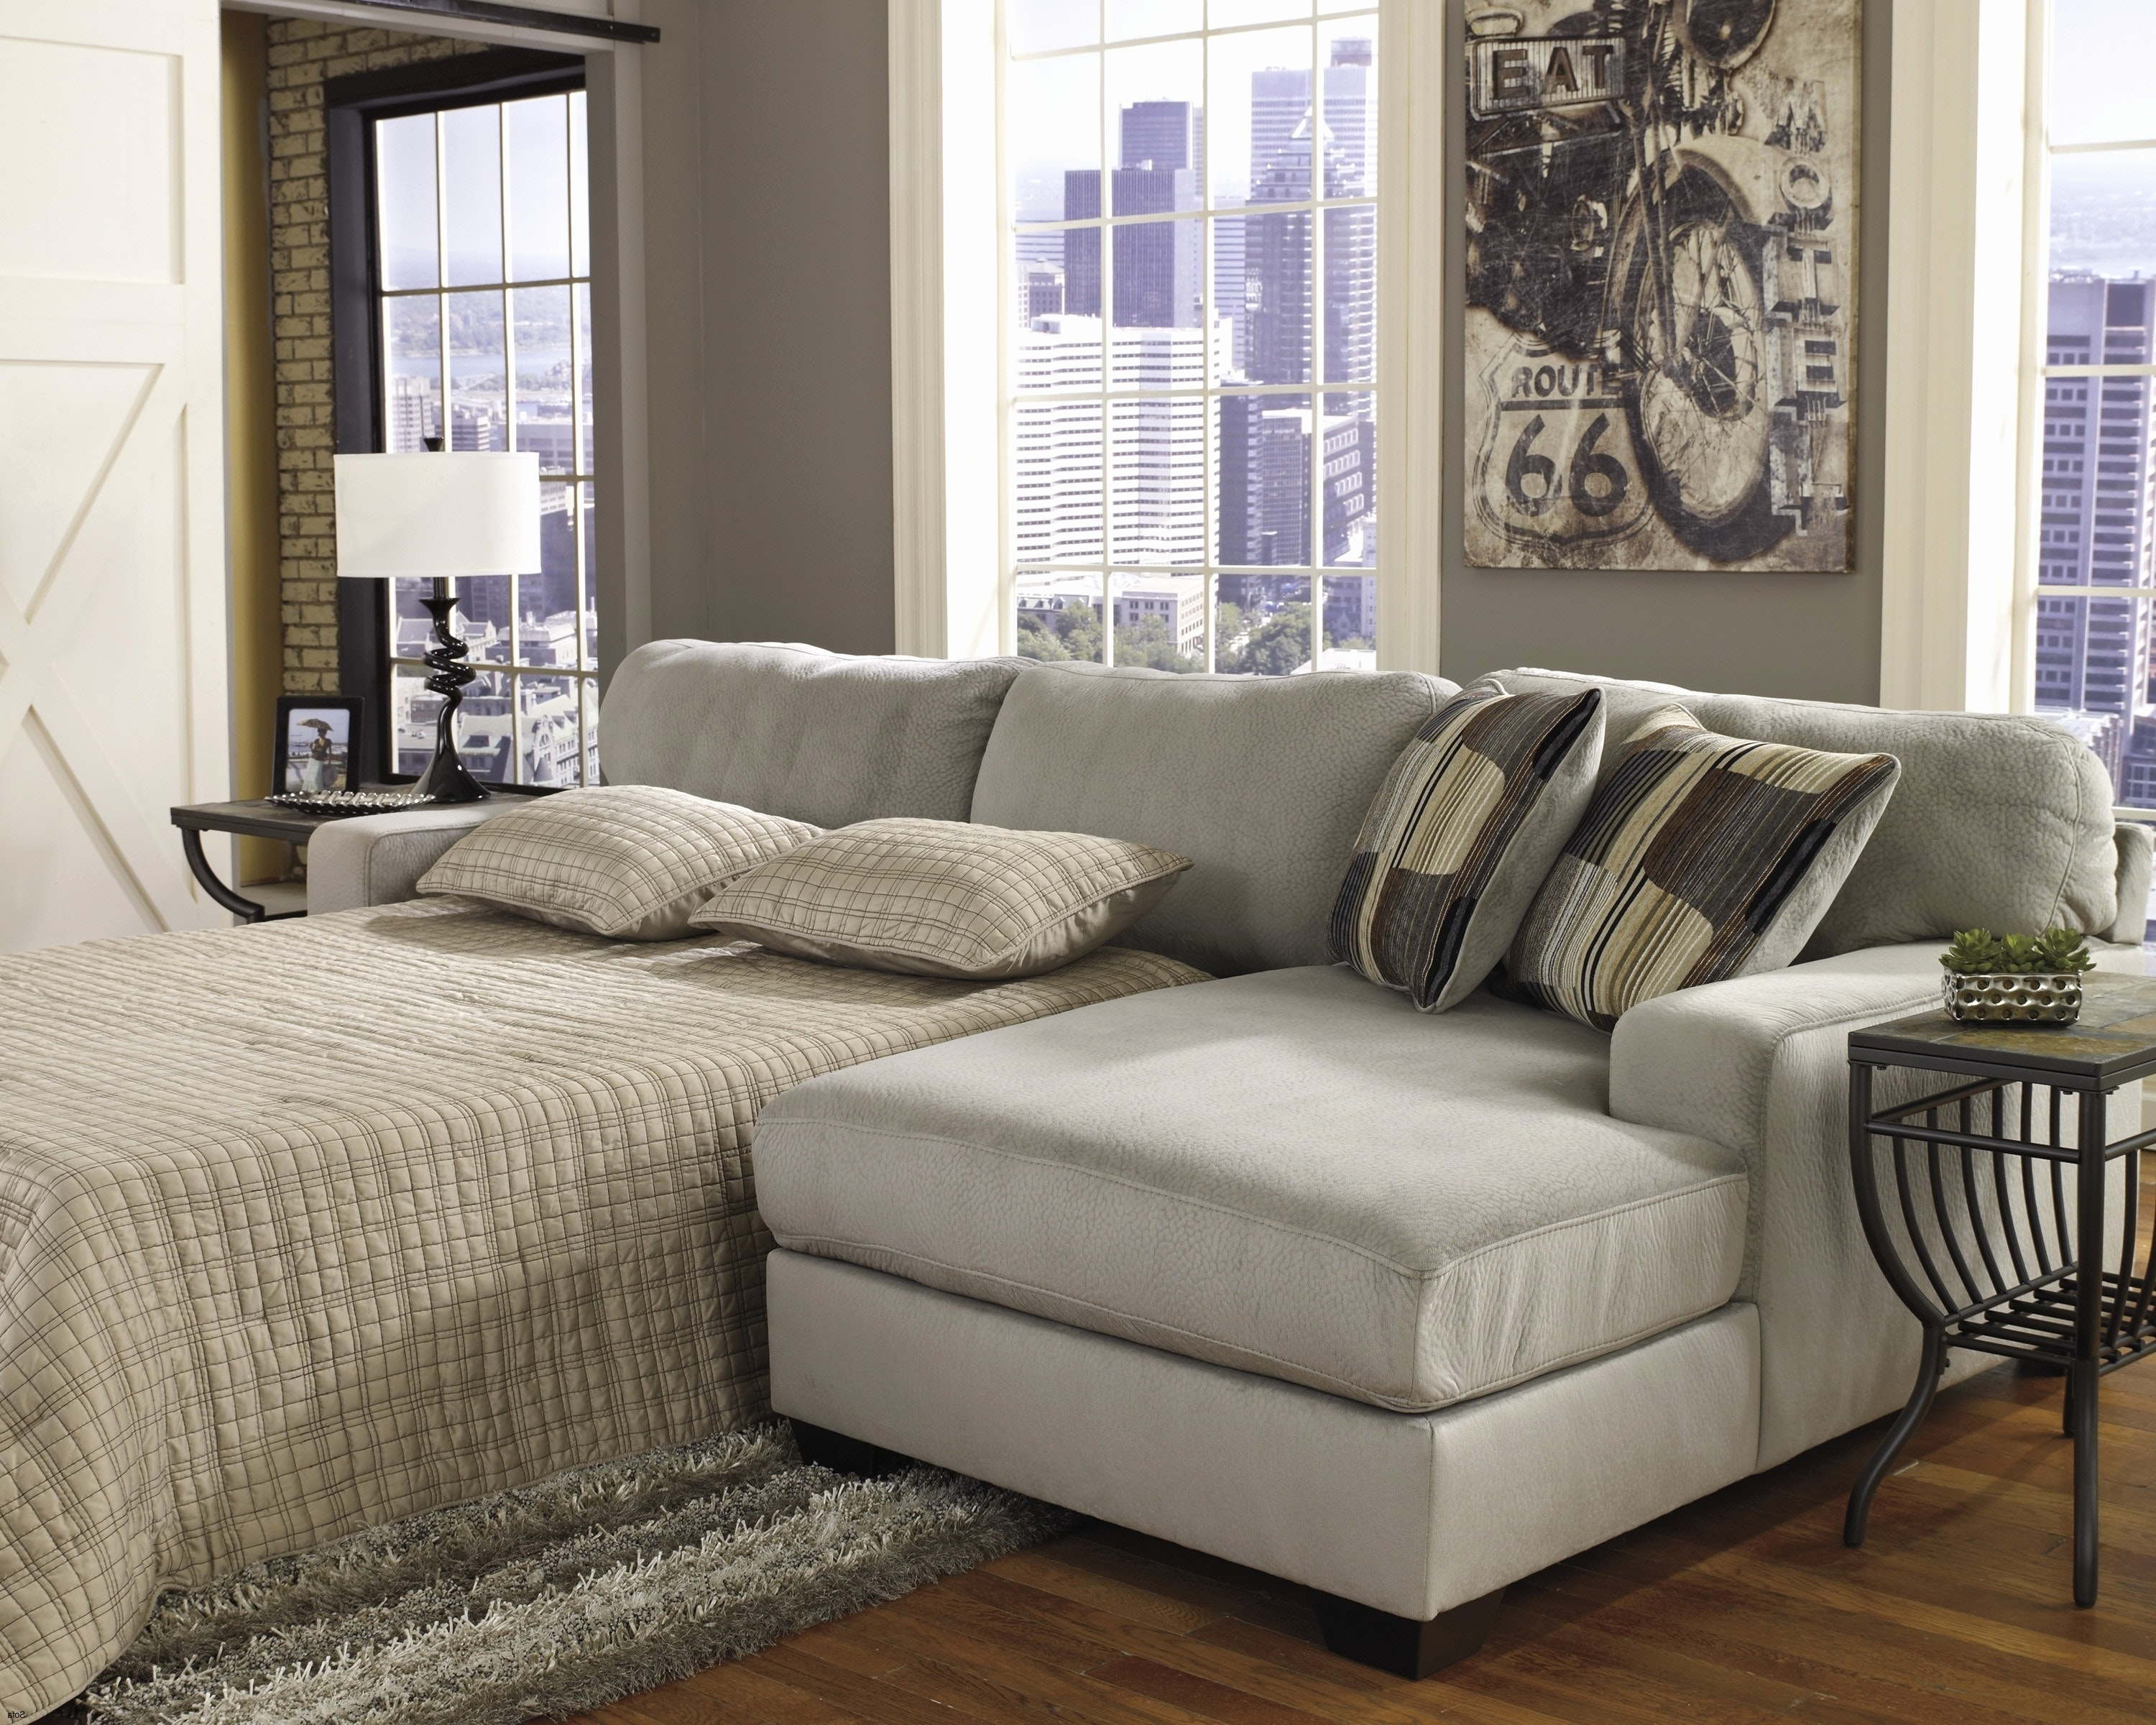 Most Popular Awesome Sectional Sofa Sleeper 2018 – Couches Ideas Intended For Room And Board Sectional Sofas (View 10 of 20)